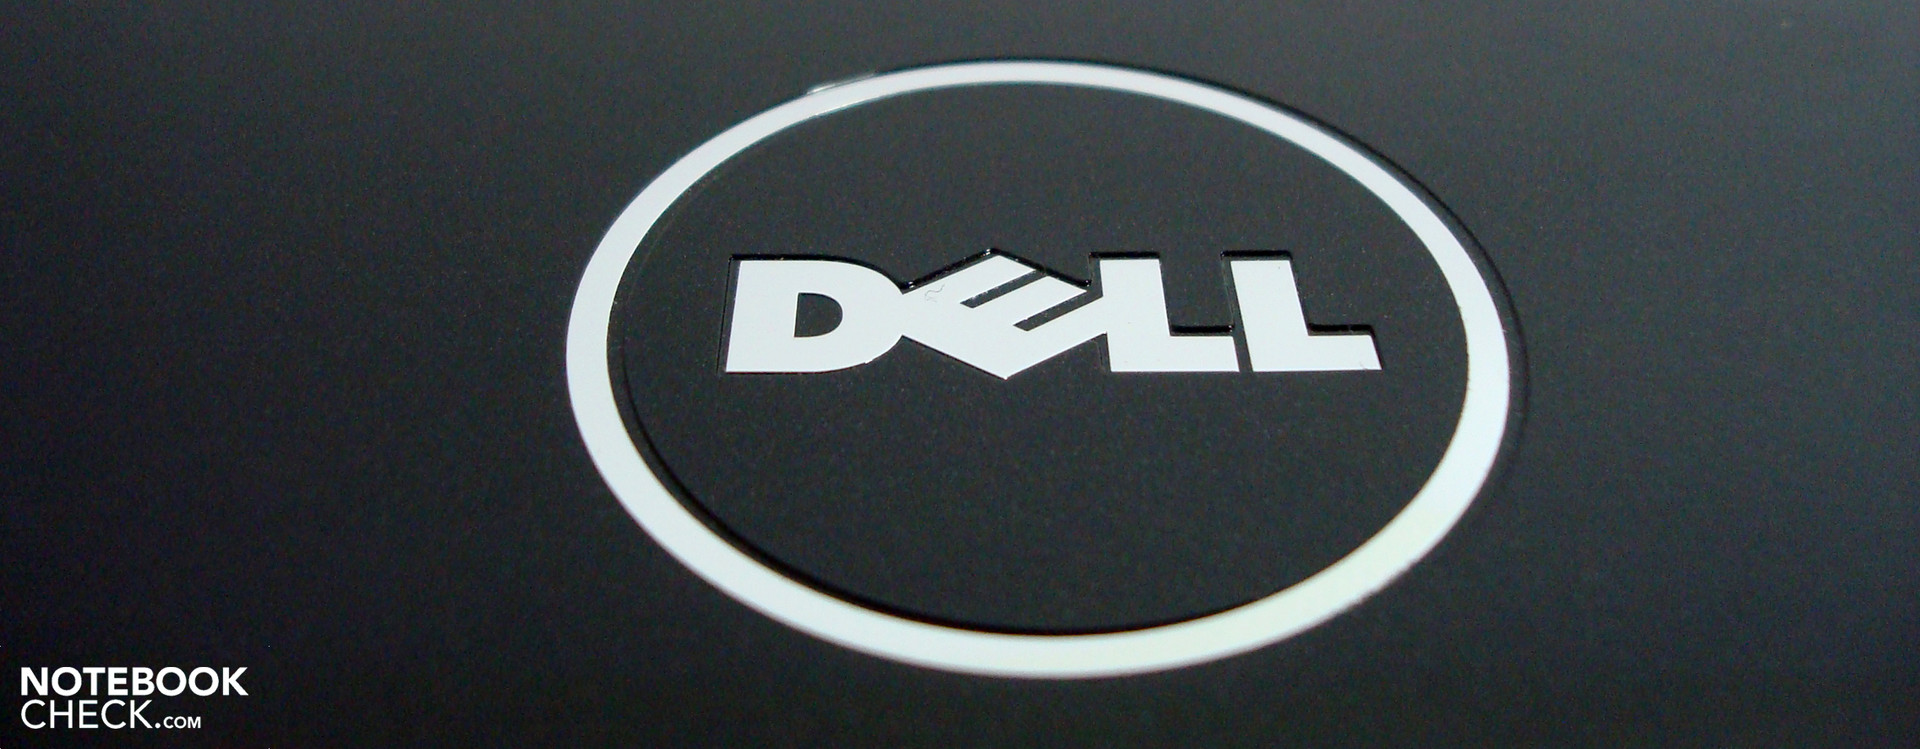 Review dell inspiron 13z notebook notebookcheck reviews dell inspiron 13z notebook buycottarizona